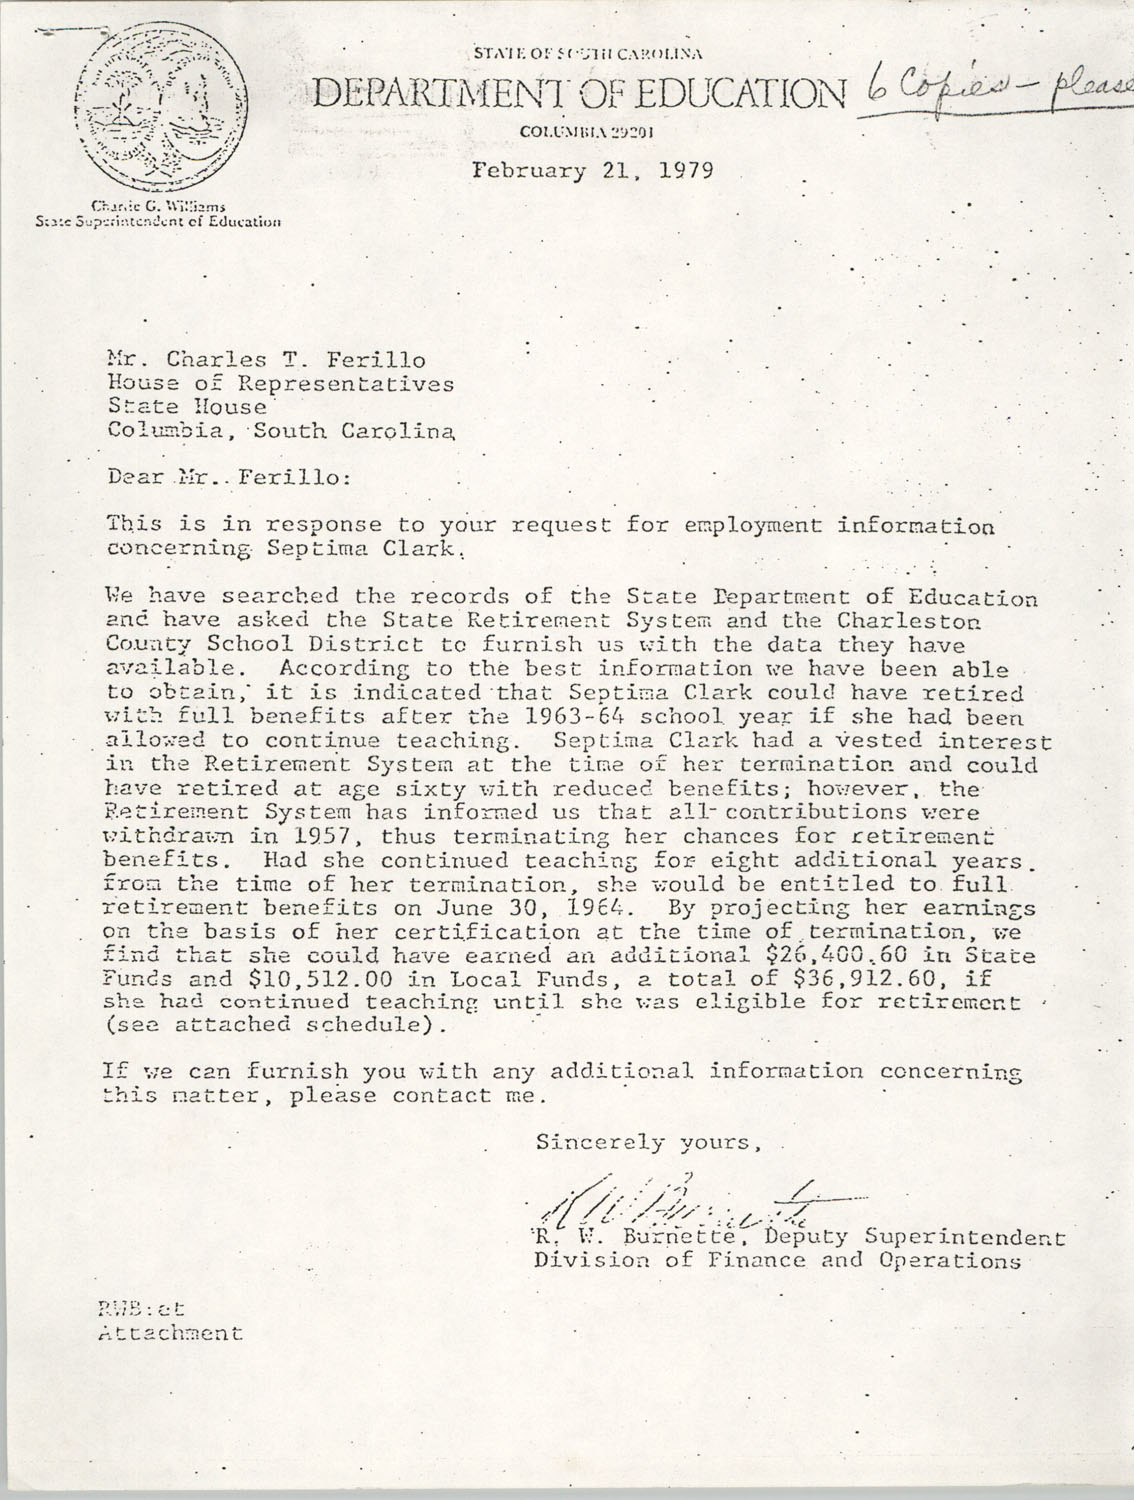 Letter from R. W. Burnette to Charles T. Ferillo, February 21, 1979